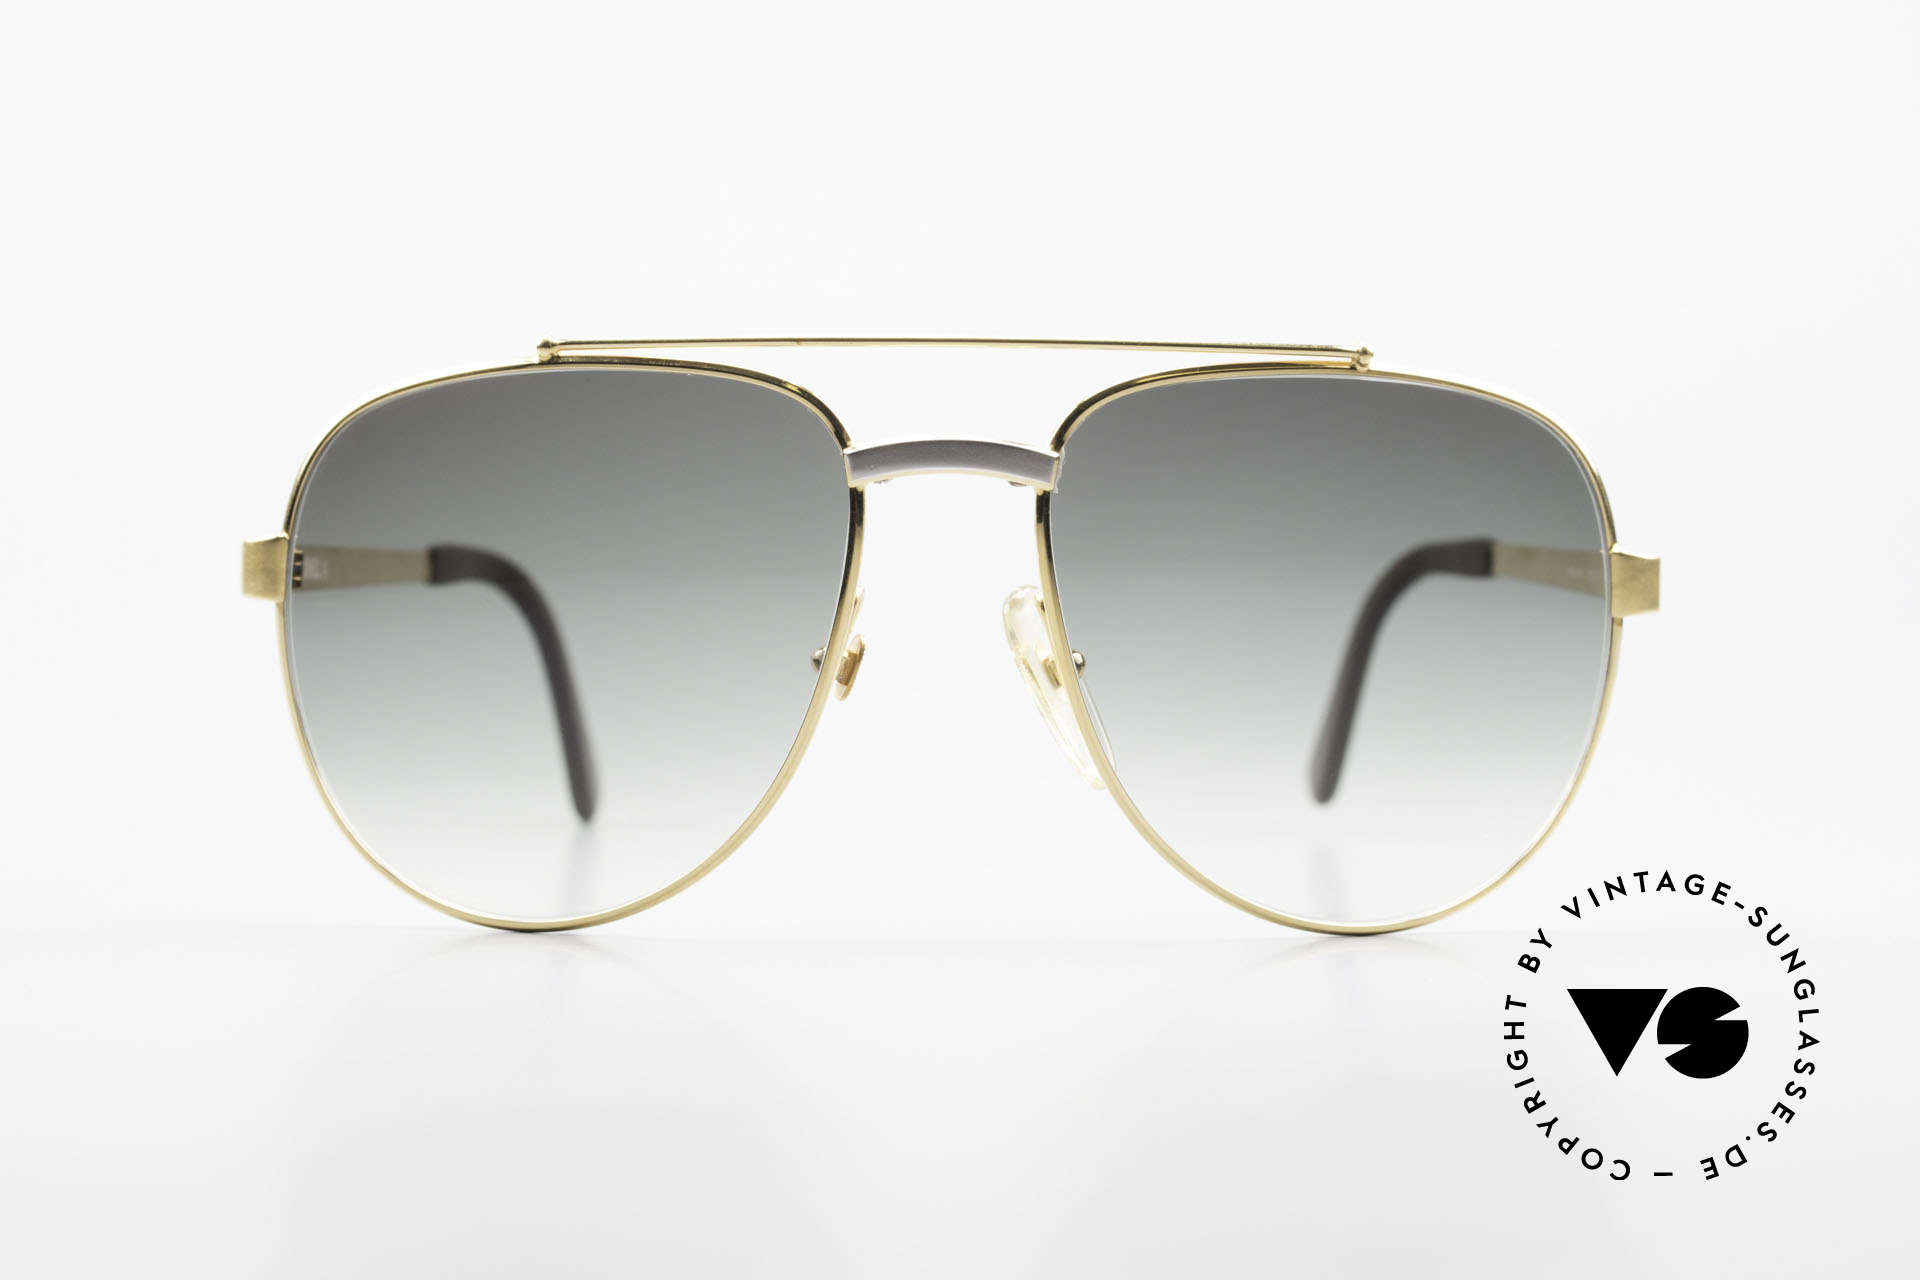 Dunhill 6029 Gold Plated Luxury Sunglasses, stylish A. Dunhill vintage sunglasses from 1985, Made for Men